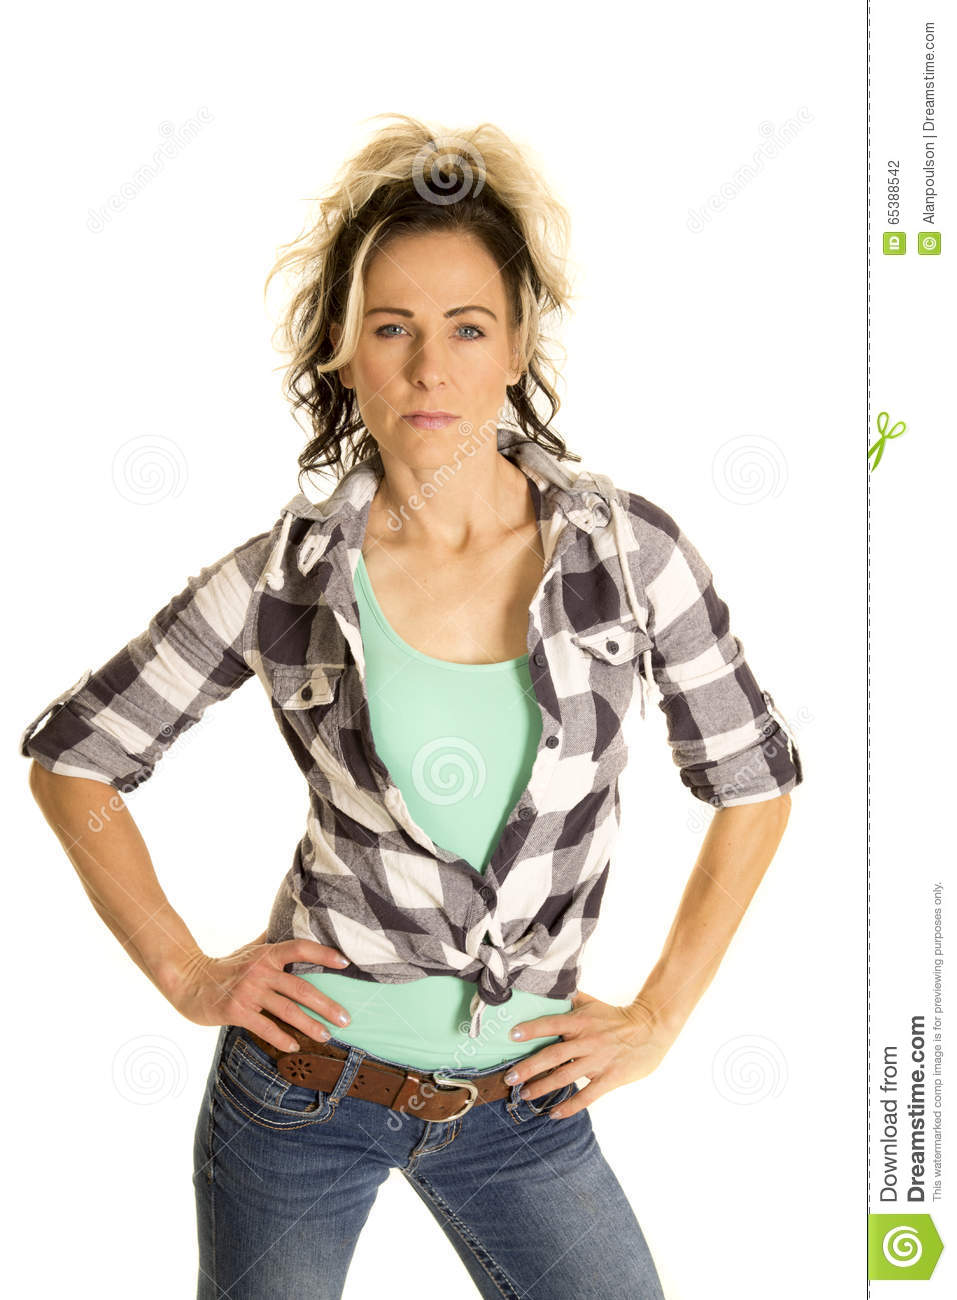 Woman in plaid shirt hands on hips serious